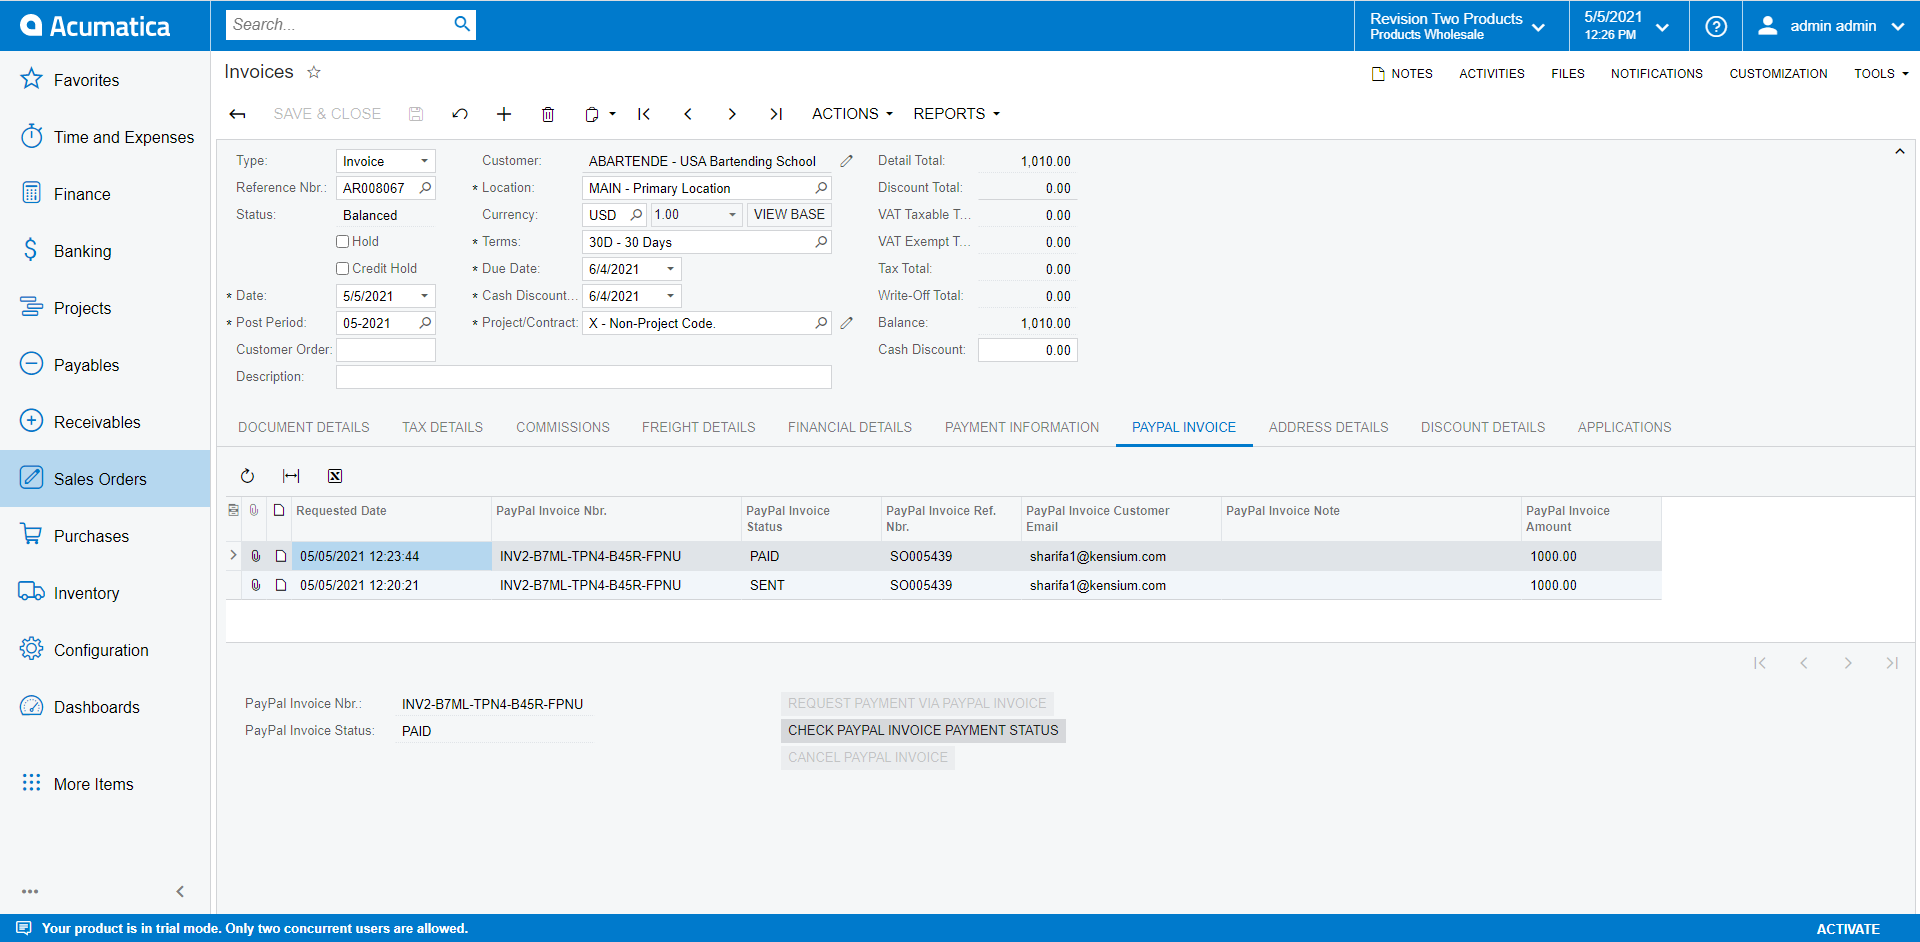 PayPal Invoicing on the Invoices Screen